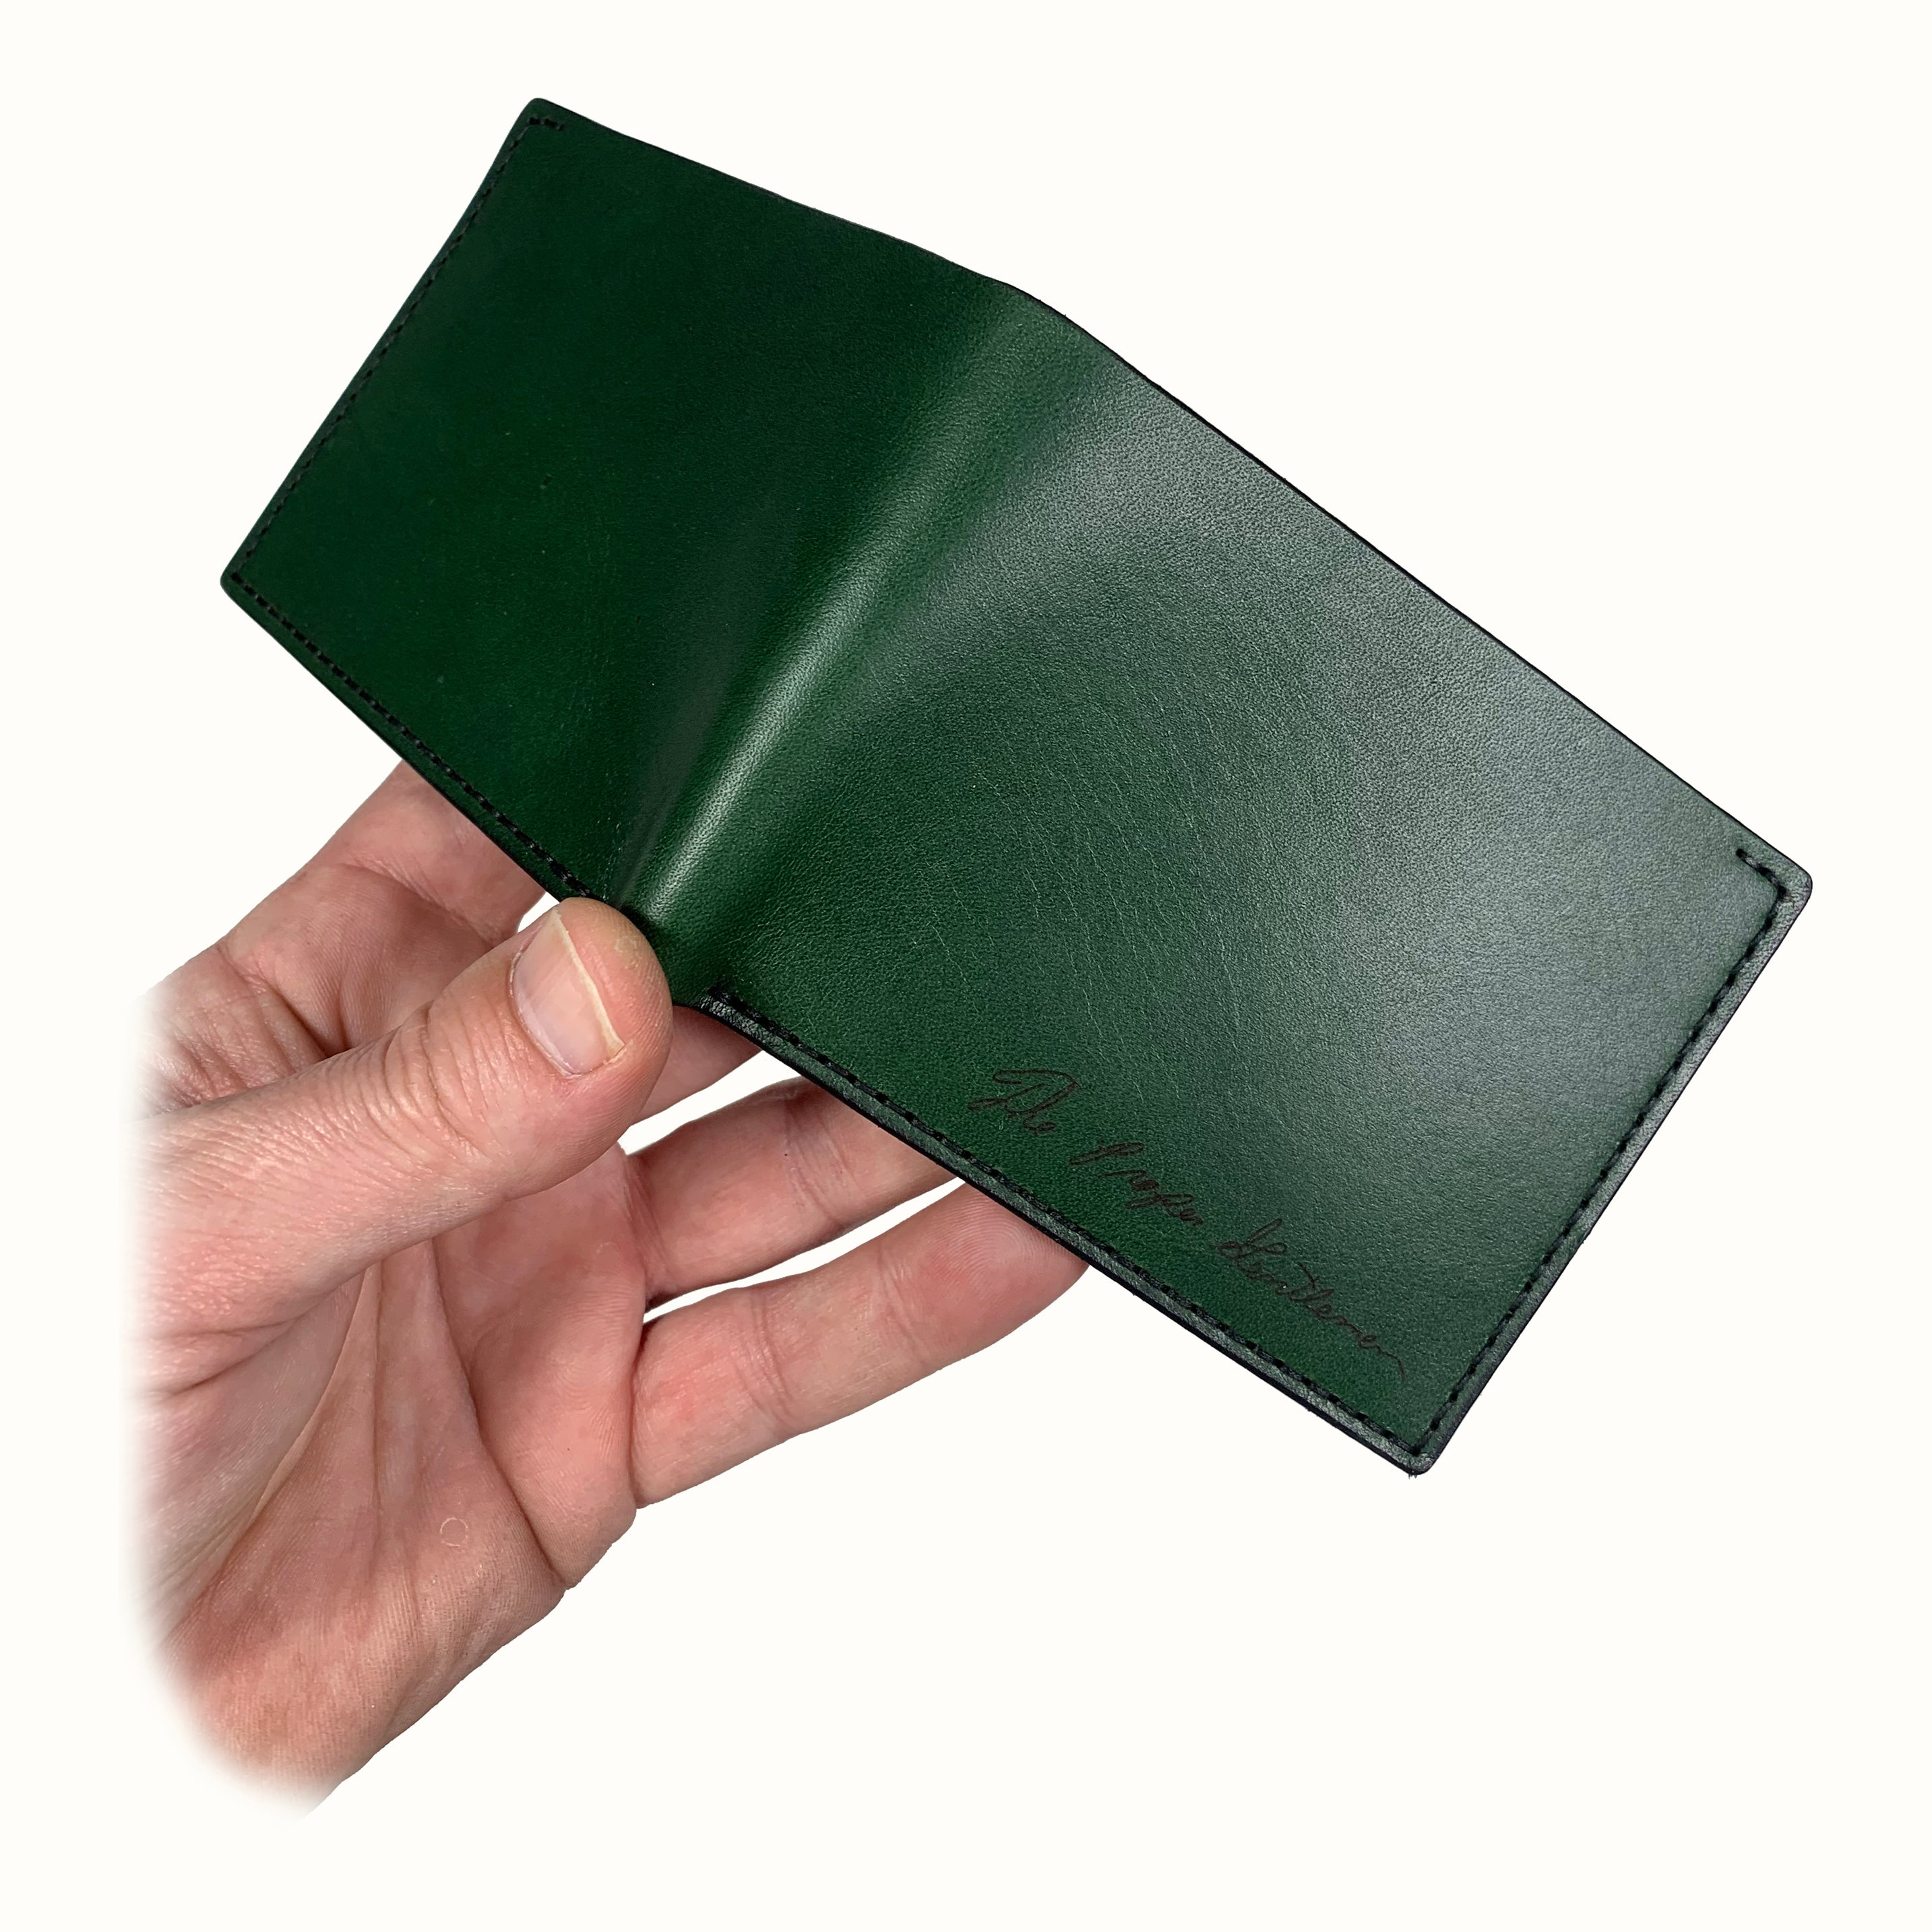 JohnBoy Bifold - Zucchini Green and Tan